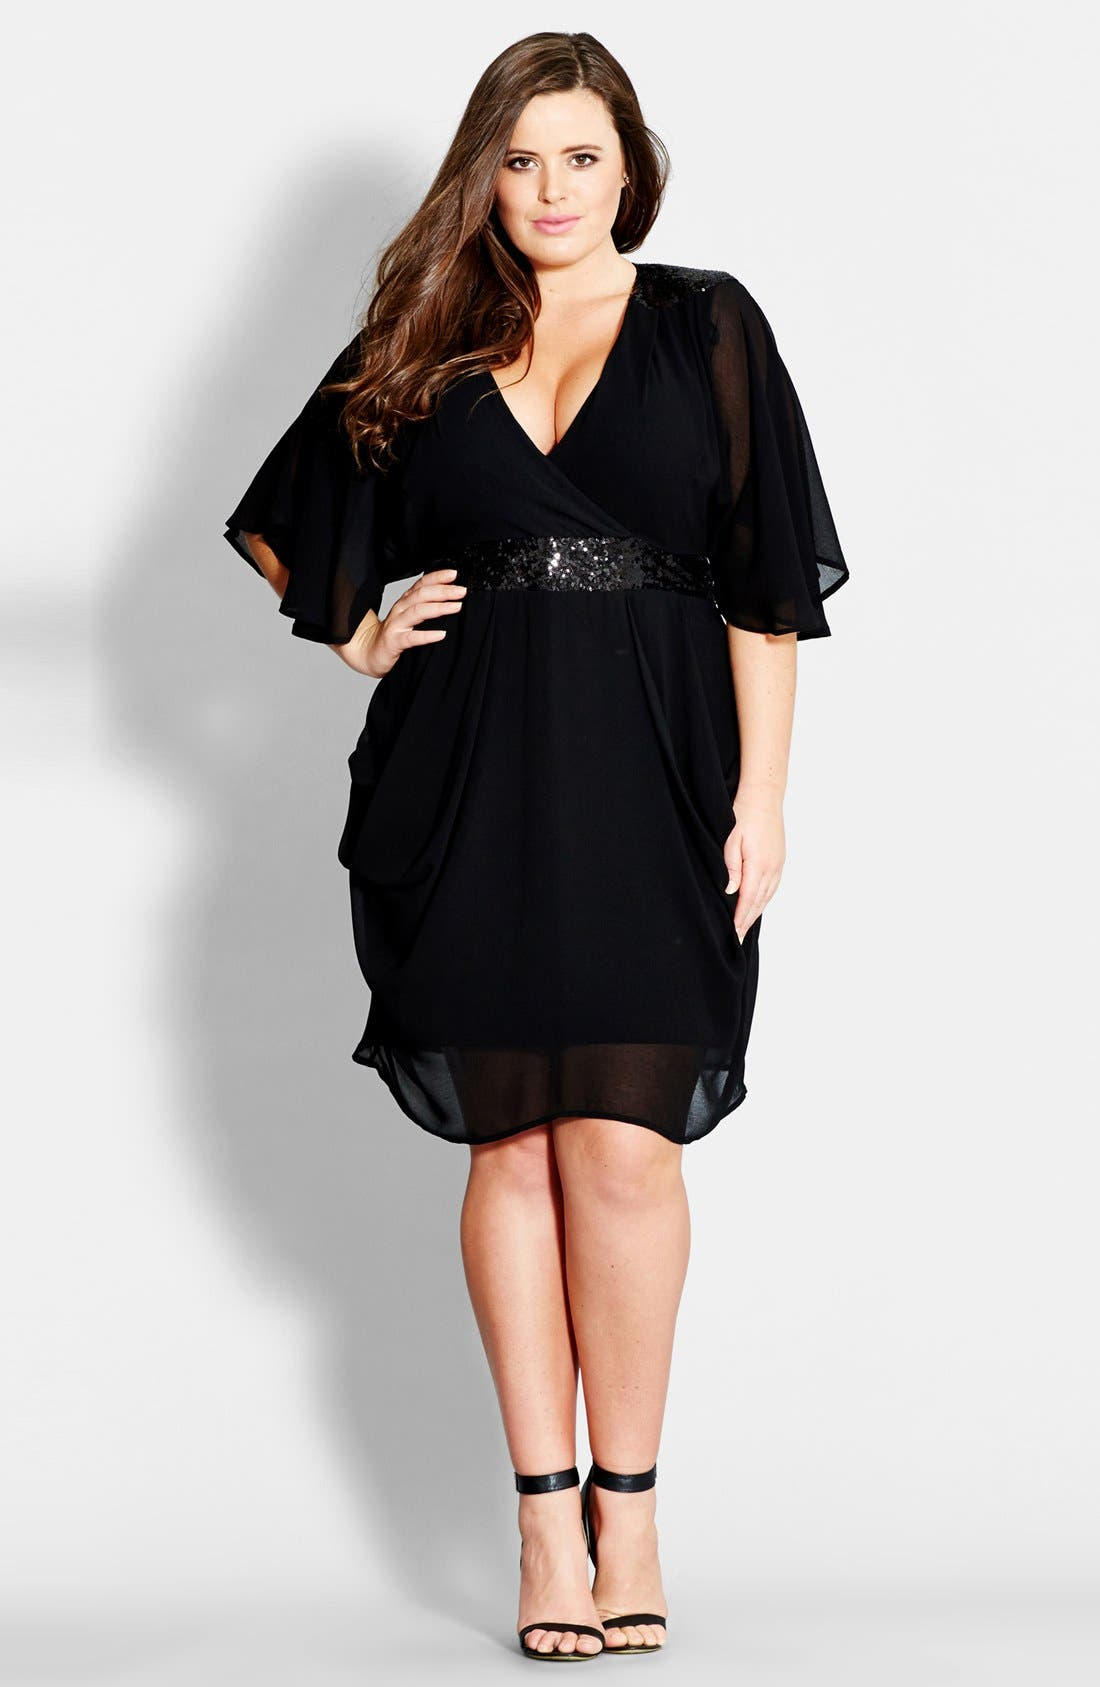 Cocktail dresses for plus size woemn